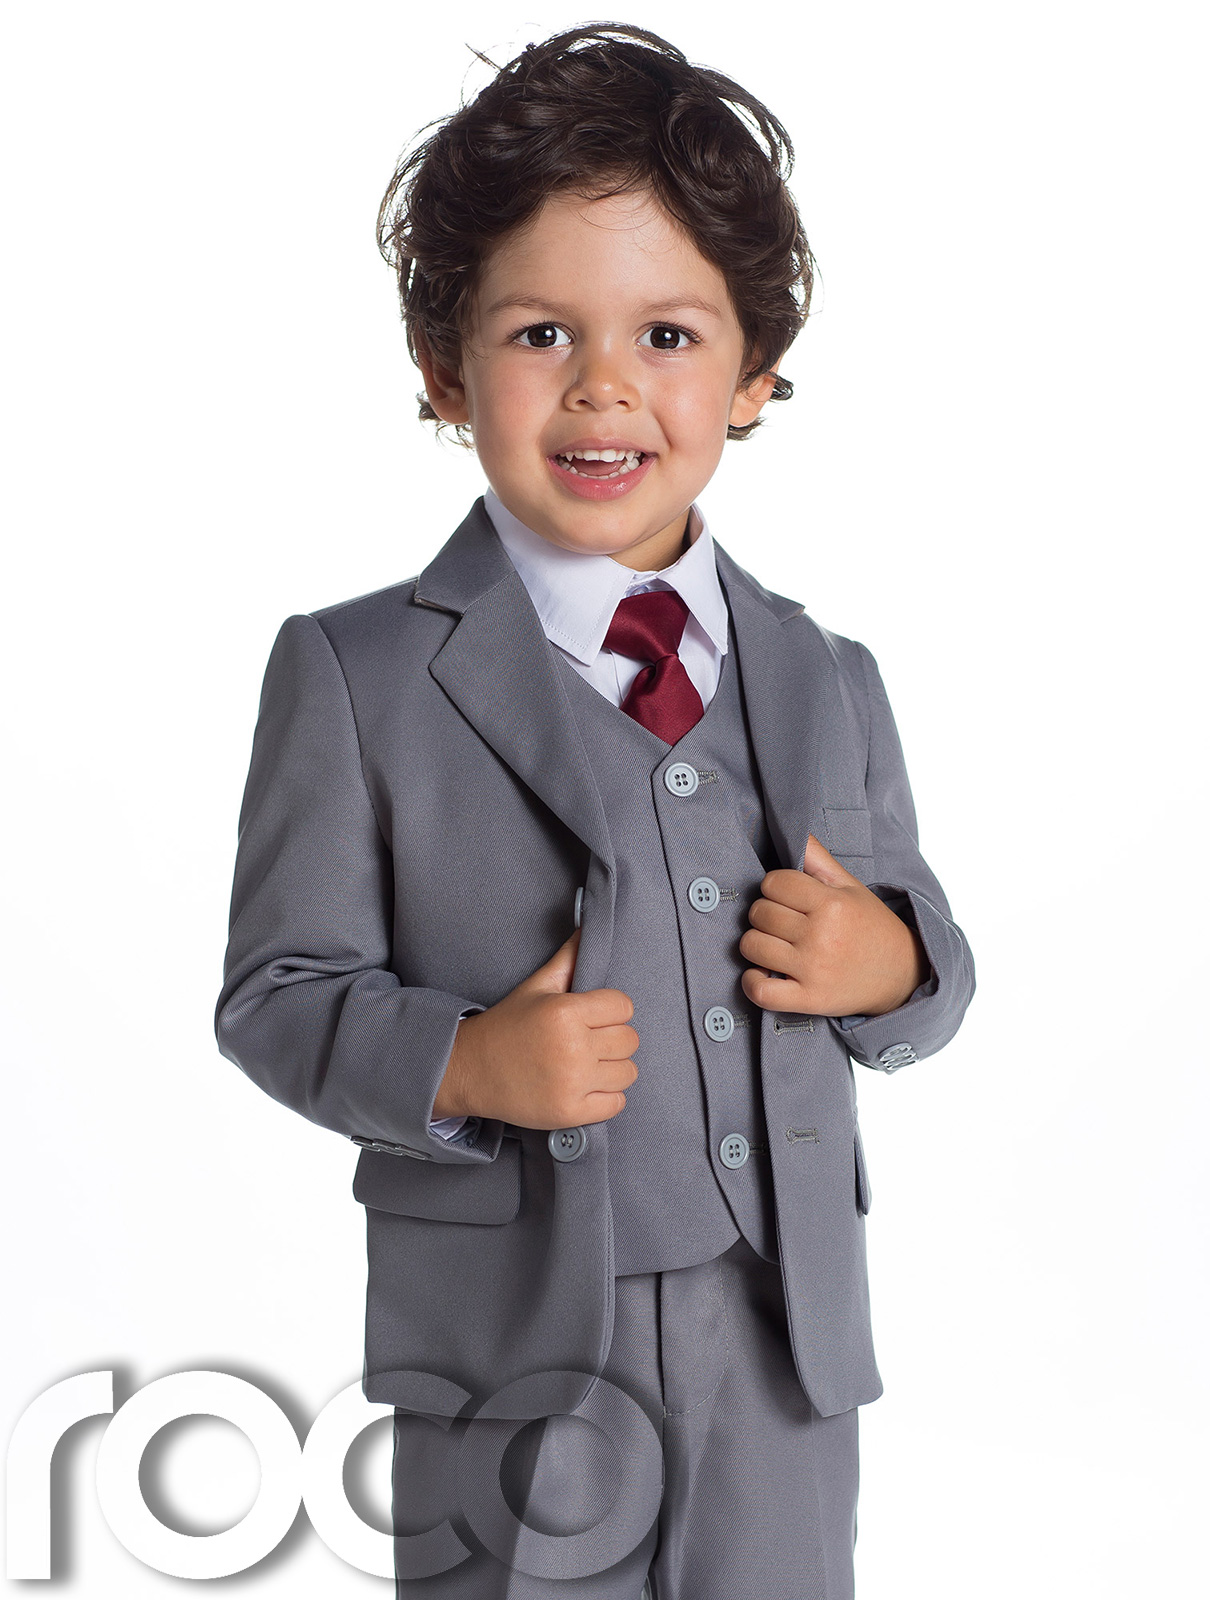 Shop for toddler suit grey online at Target. Free shipping on purchases over $35 and save 5% every day with your Target REDcard.